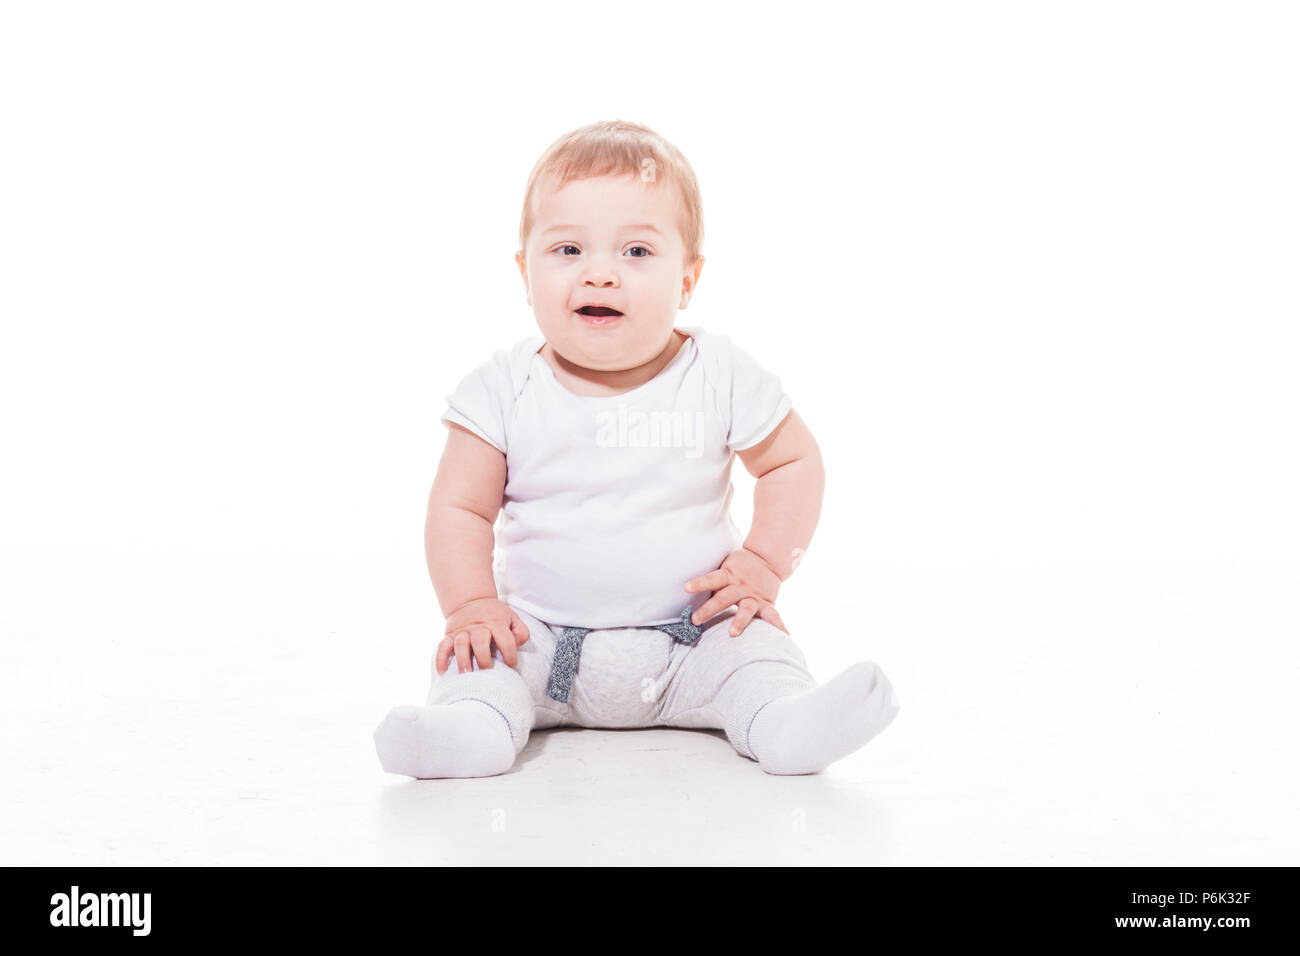 smiling baby sitting on a floor - Stock Image